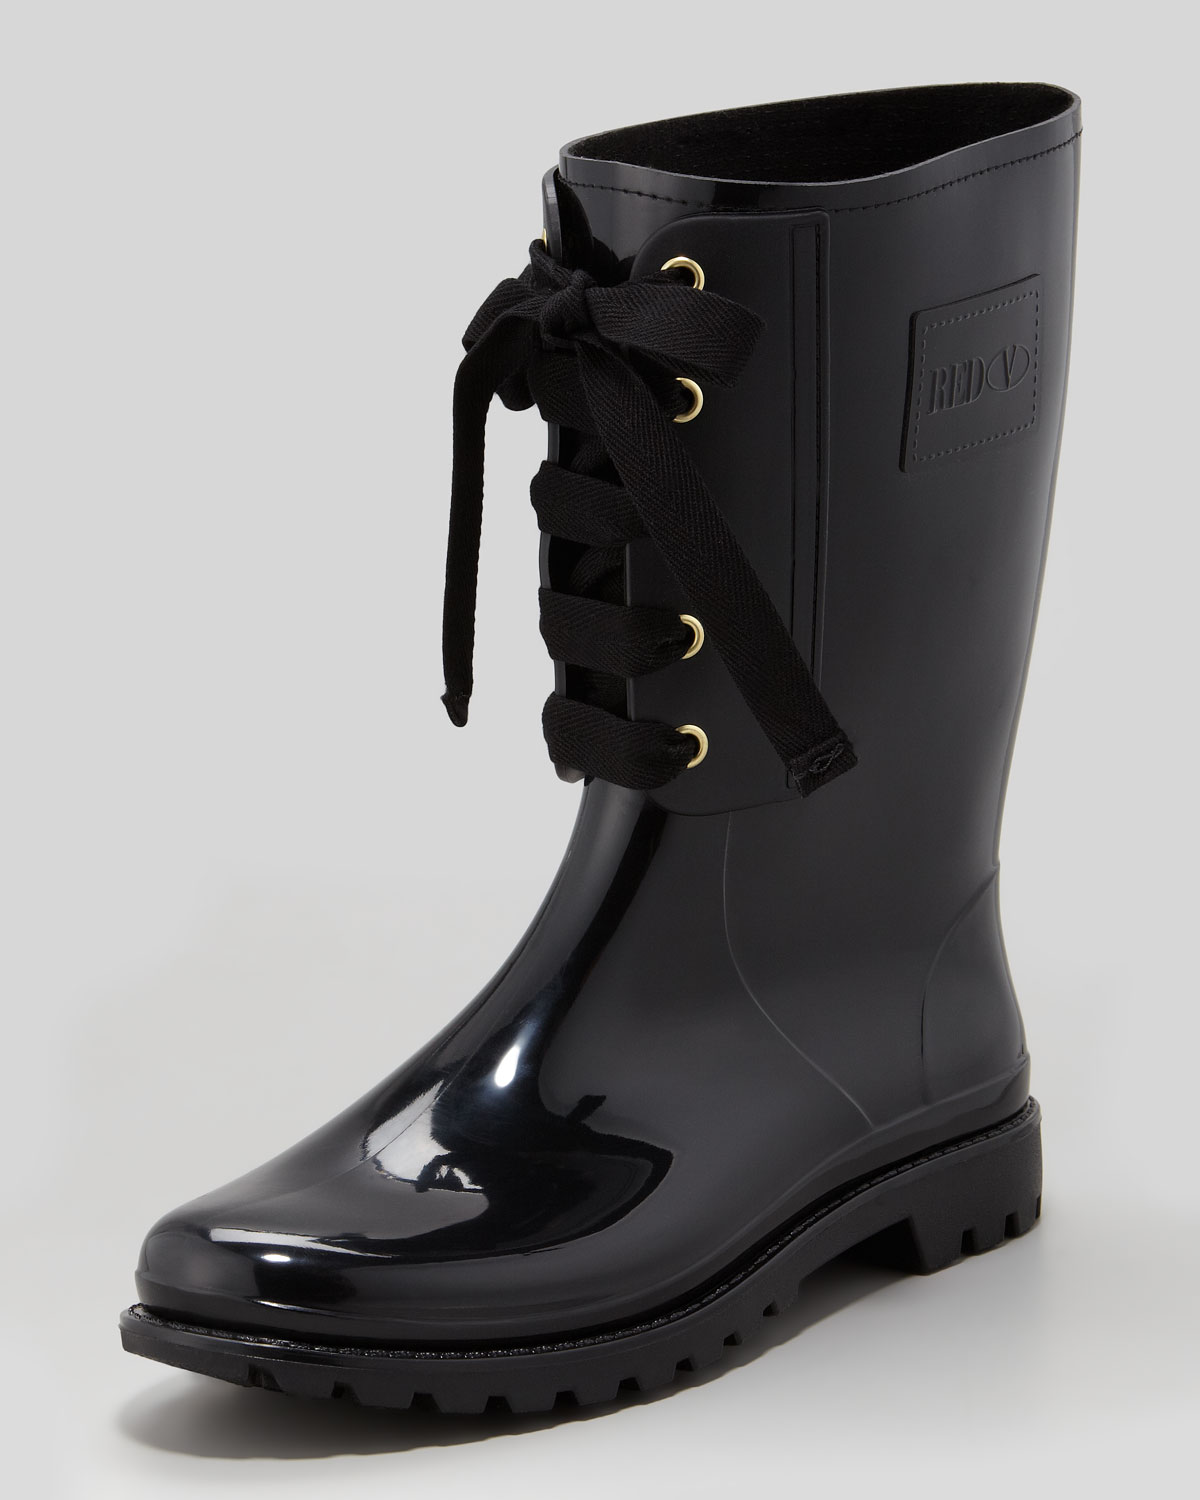 Red valentino Laceup Rain Boot Black in Black | Lyst